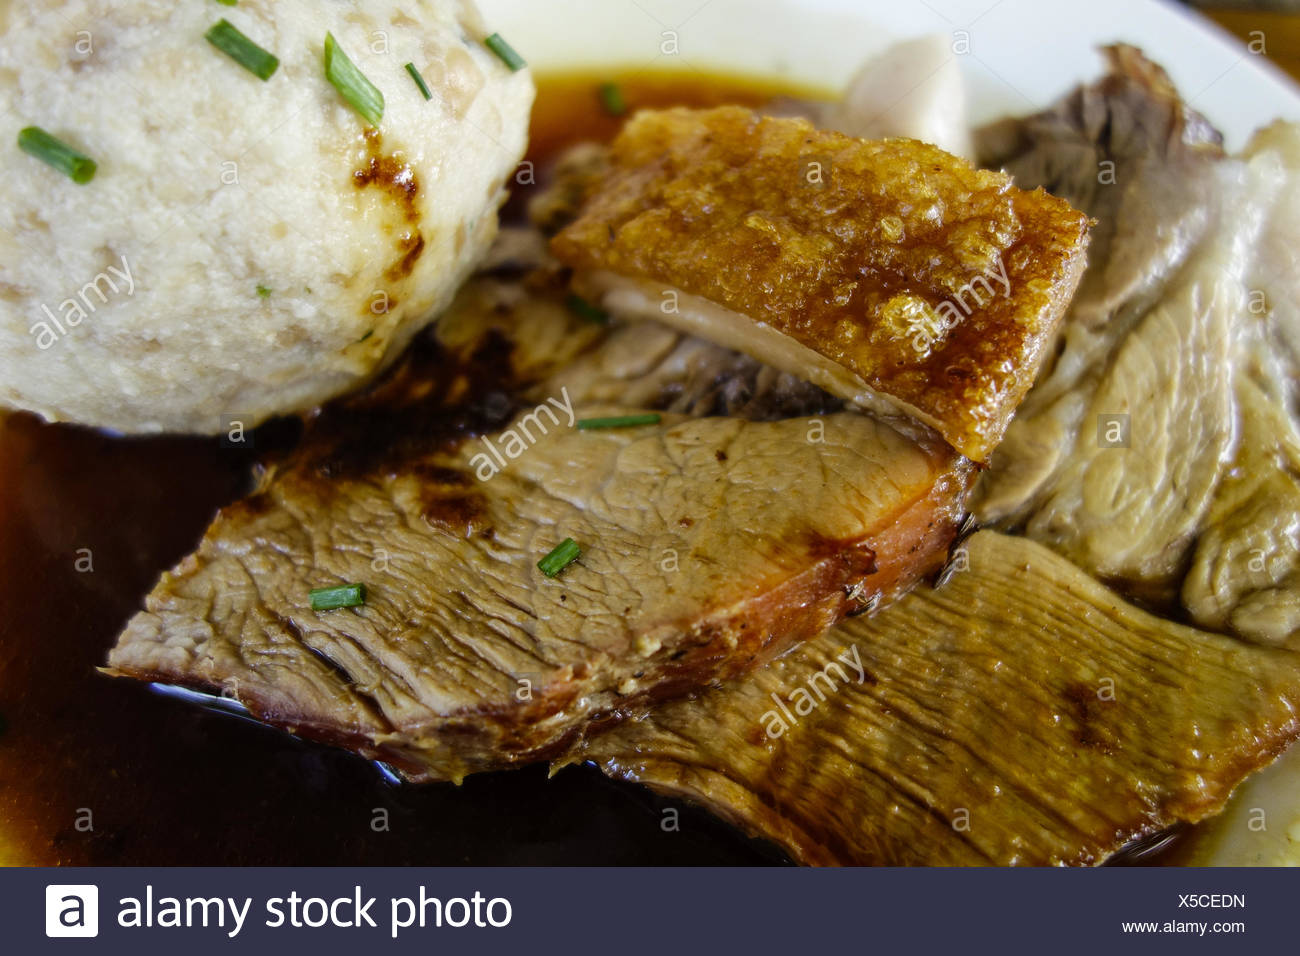 Bayerischer Schweinebraten mit Kruste und Knödel, Bavarian roast pork with crackling and dumplings, Bavarian, Specialty, Roast, - Stock Image